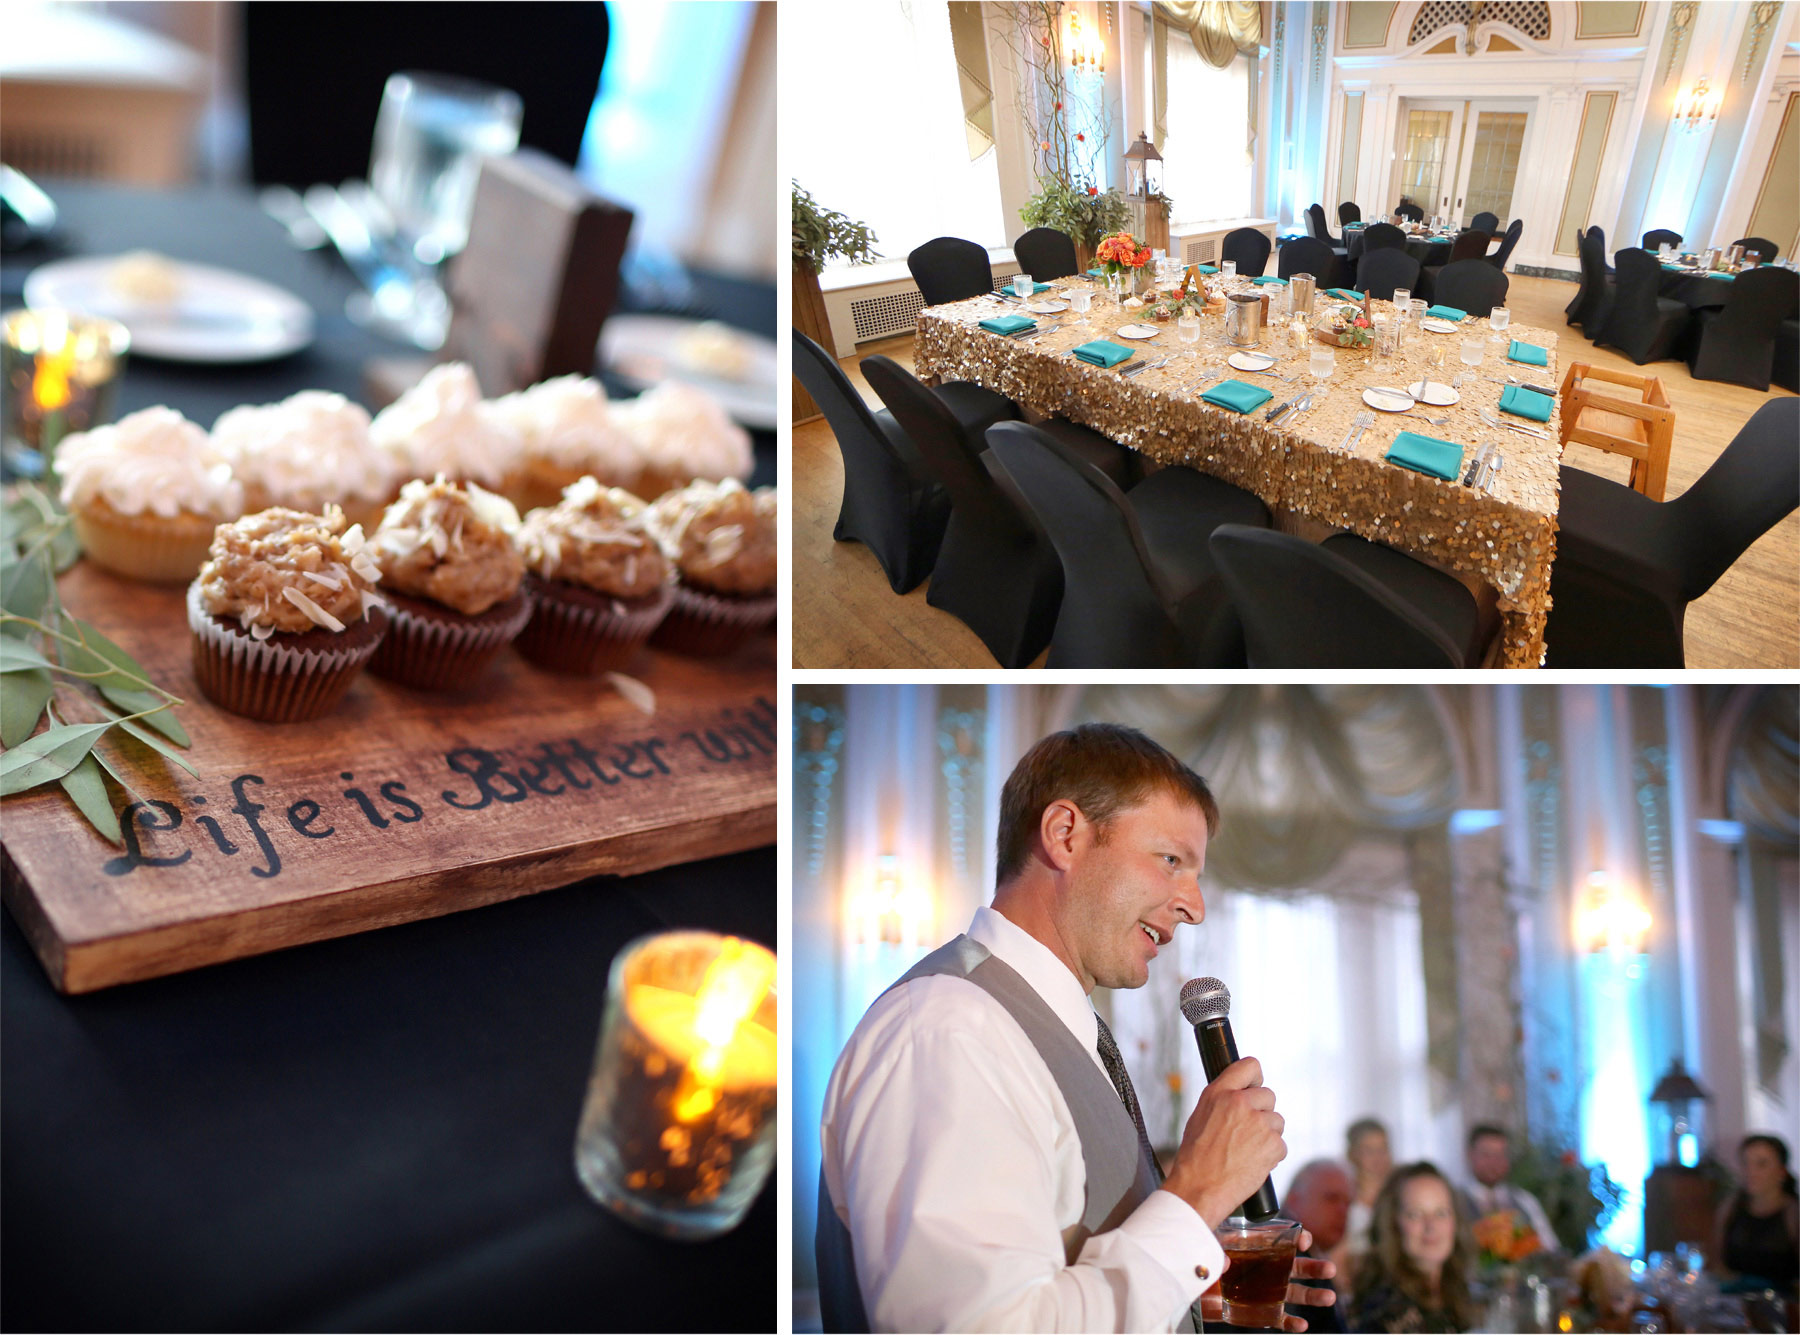 20-Duluth-Minnesota-Wedding-Photographer-by-Andrew-Vick-Photography-Summer-Greysolon-Ballroom-Reception-Cupcakes-Decor-Decorations-Details-Speeches-Groomsmen-Katie-and-Andrew.jpg